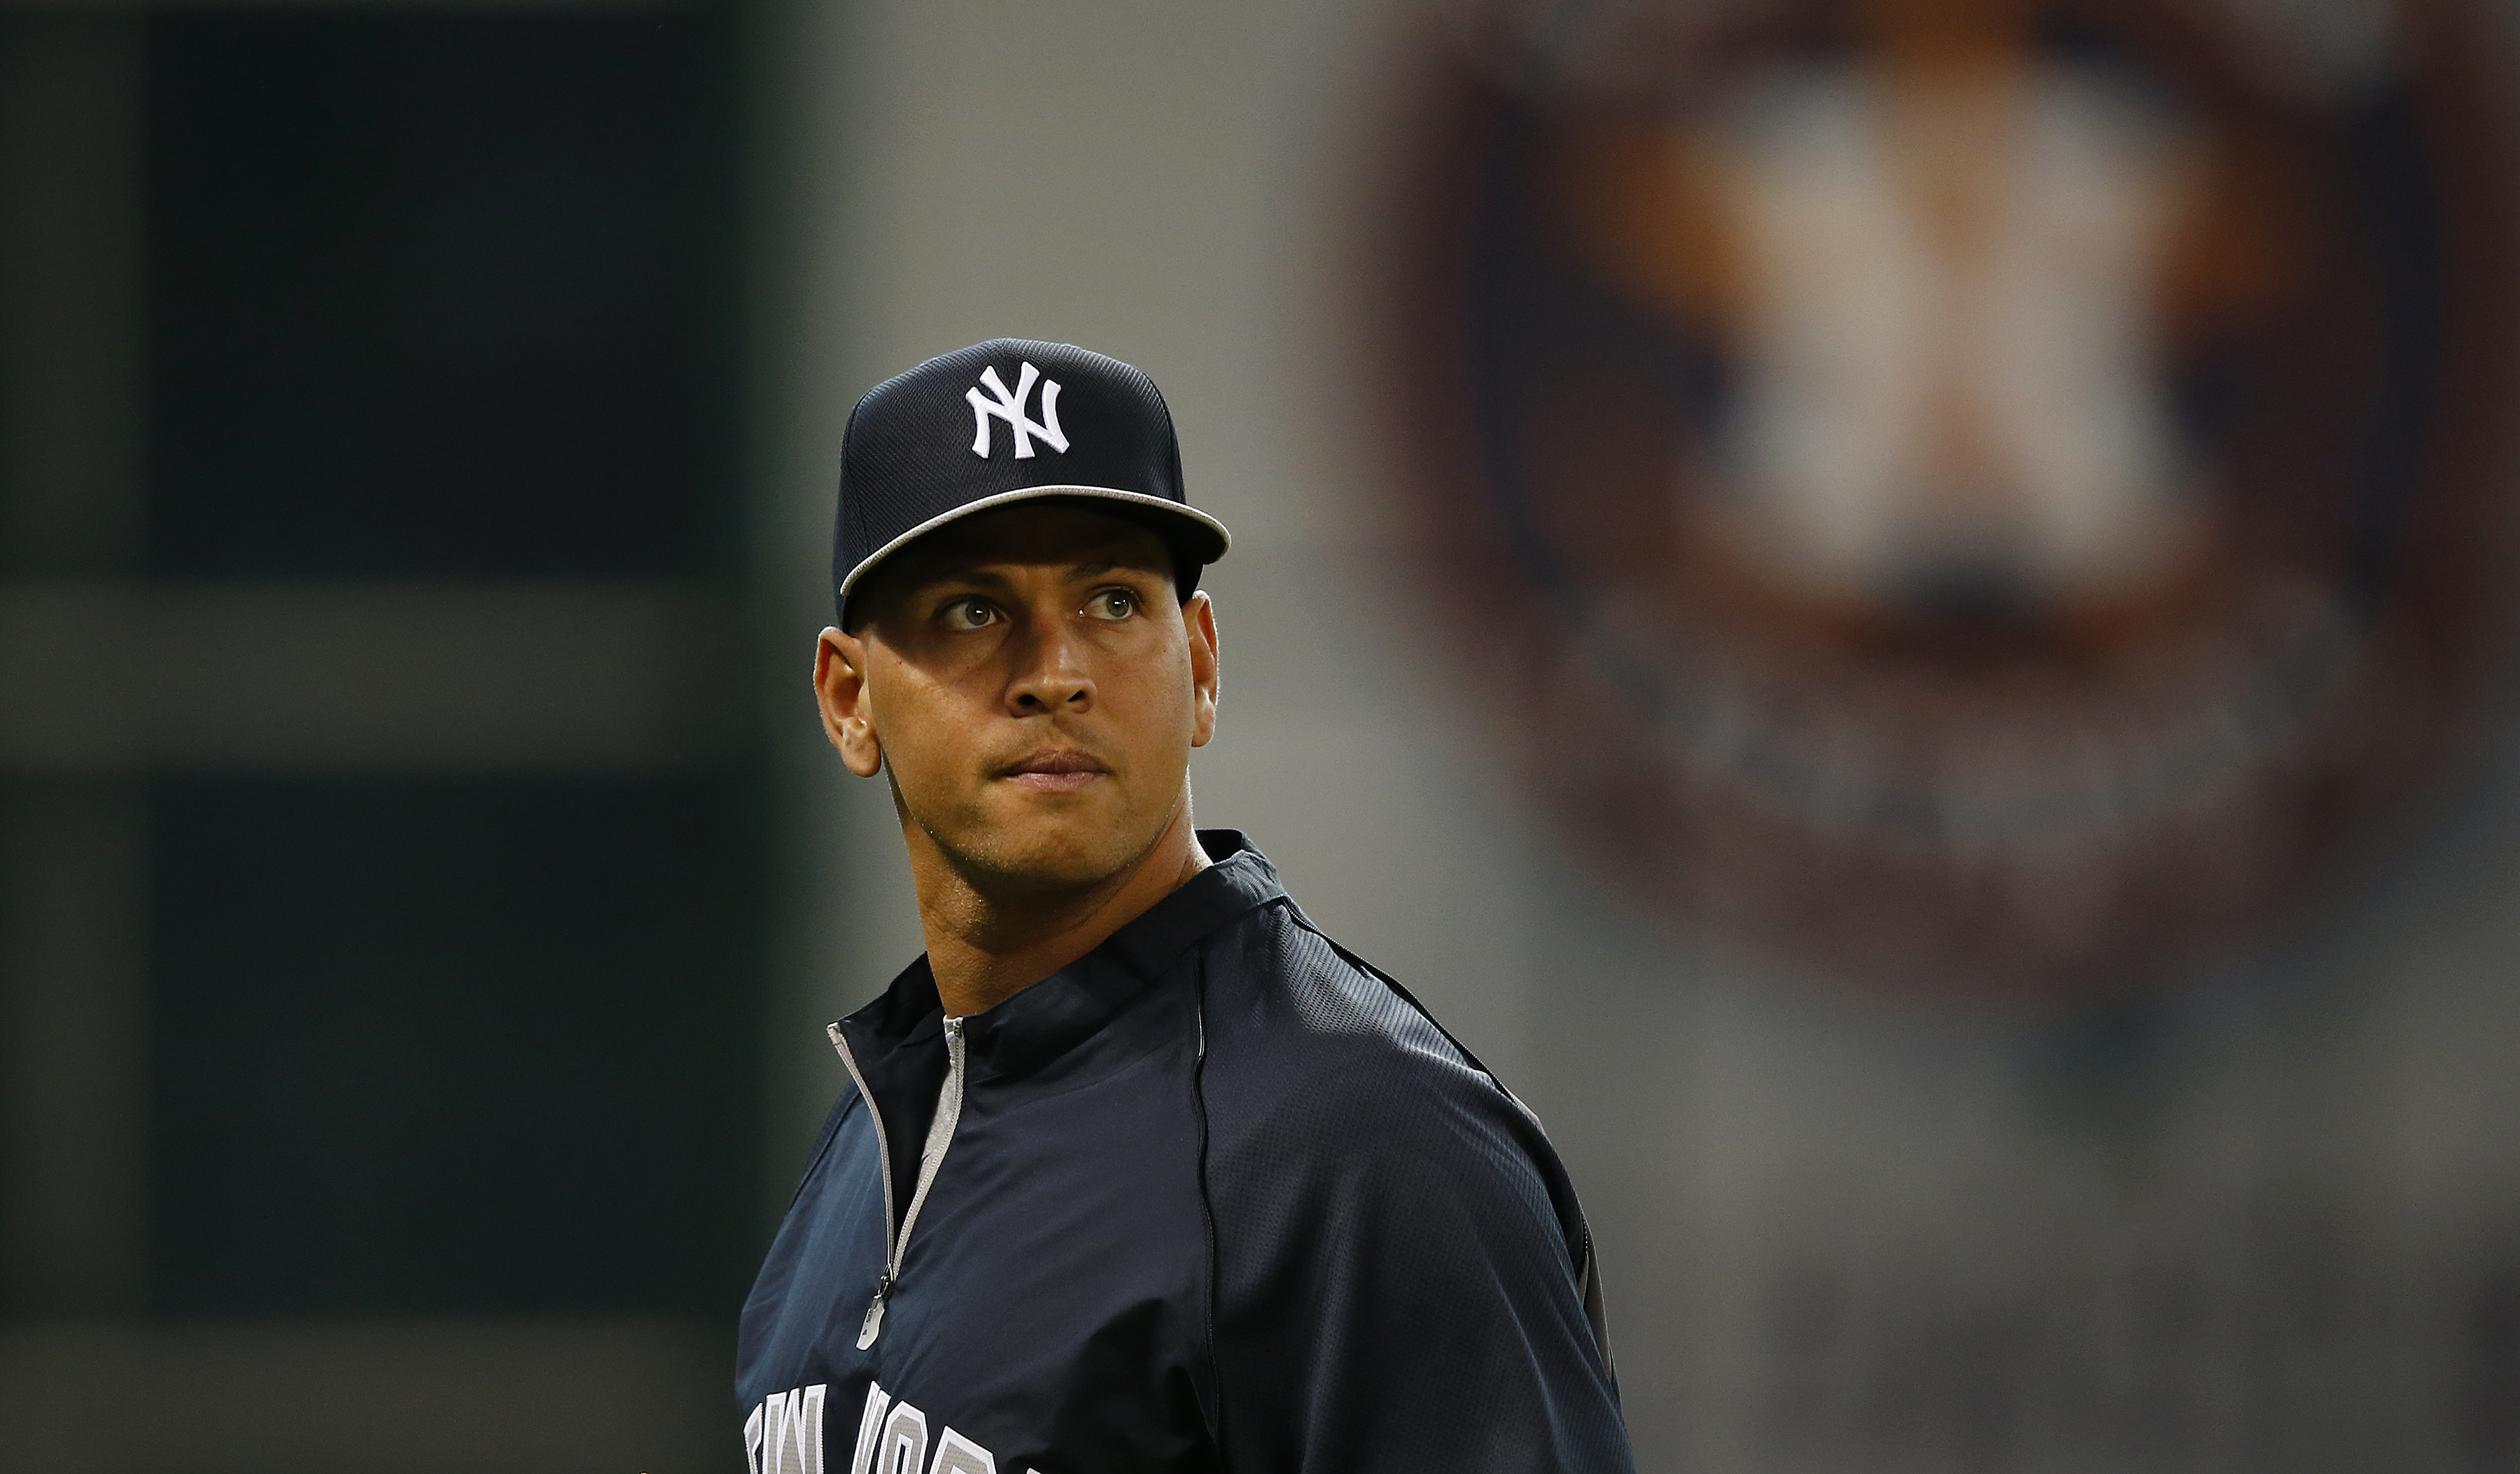 New York Yankees third baseman Alex Rodriguez (13) looks on prior to an MLB baseball game against the Houston Astros at Minute Maid Park on Sept. 27, 2013 in Houston.